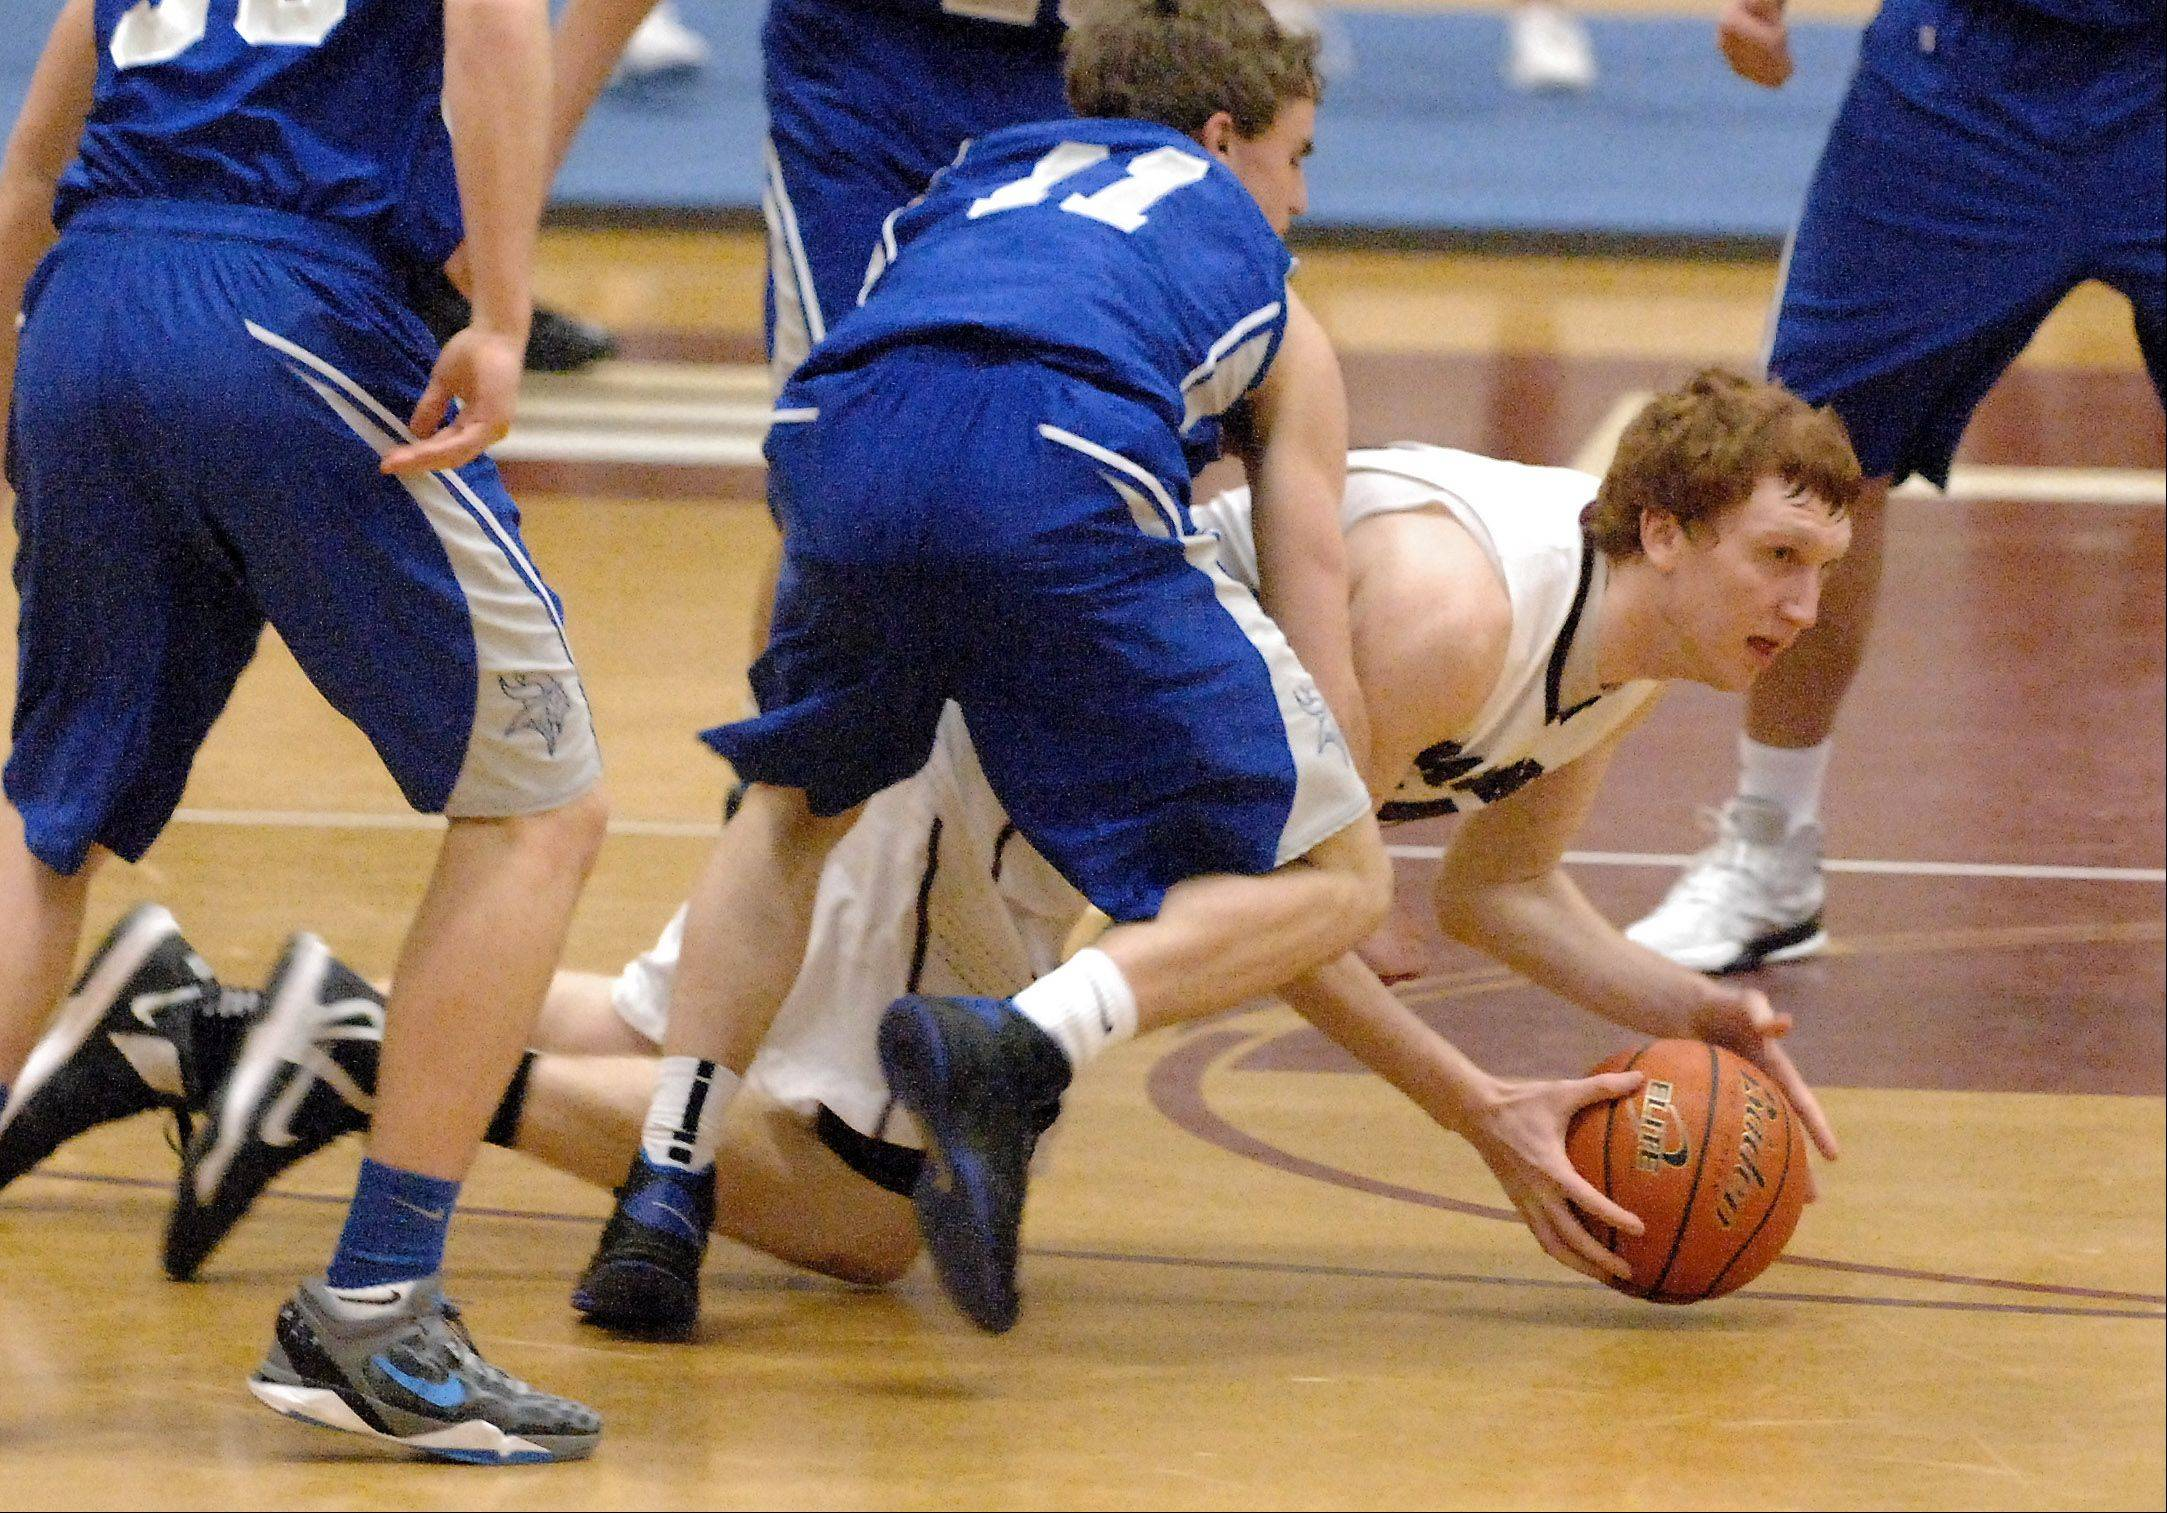 Images from the Geneva vs. Elgin boys basketball game Thursday, January 24, 2013.